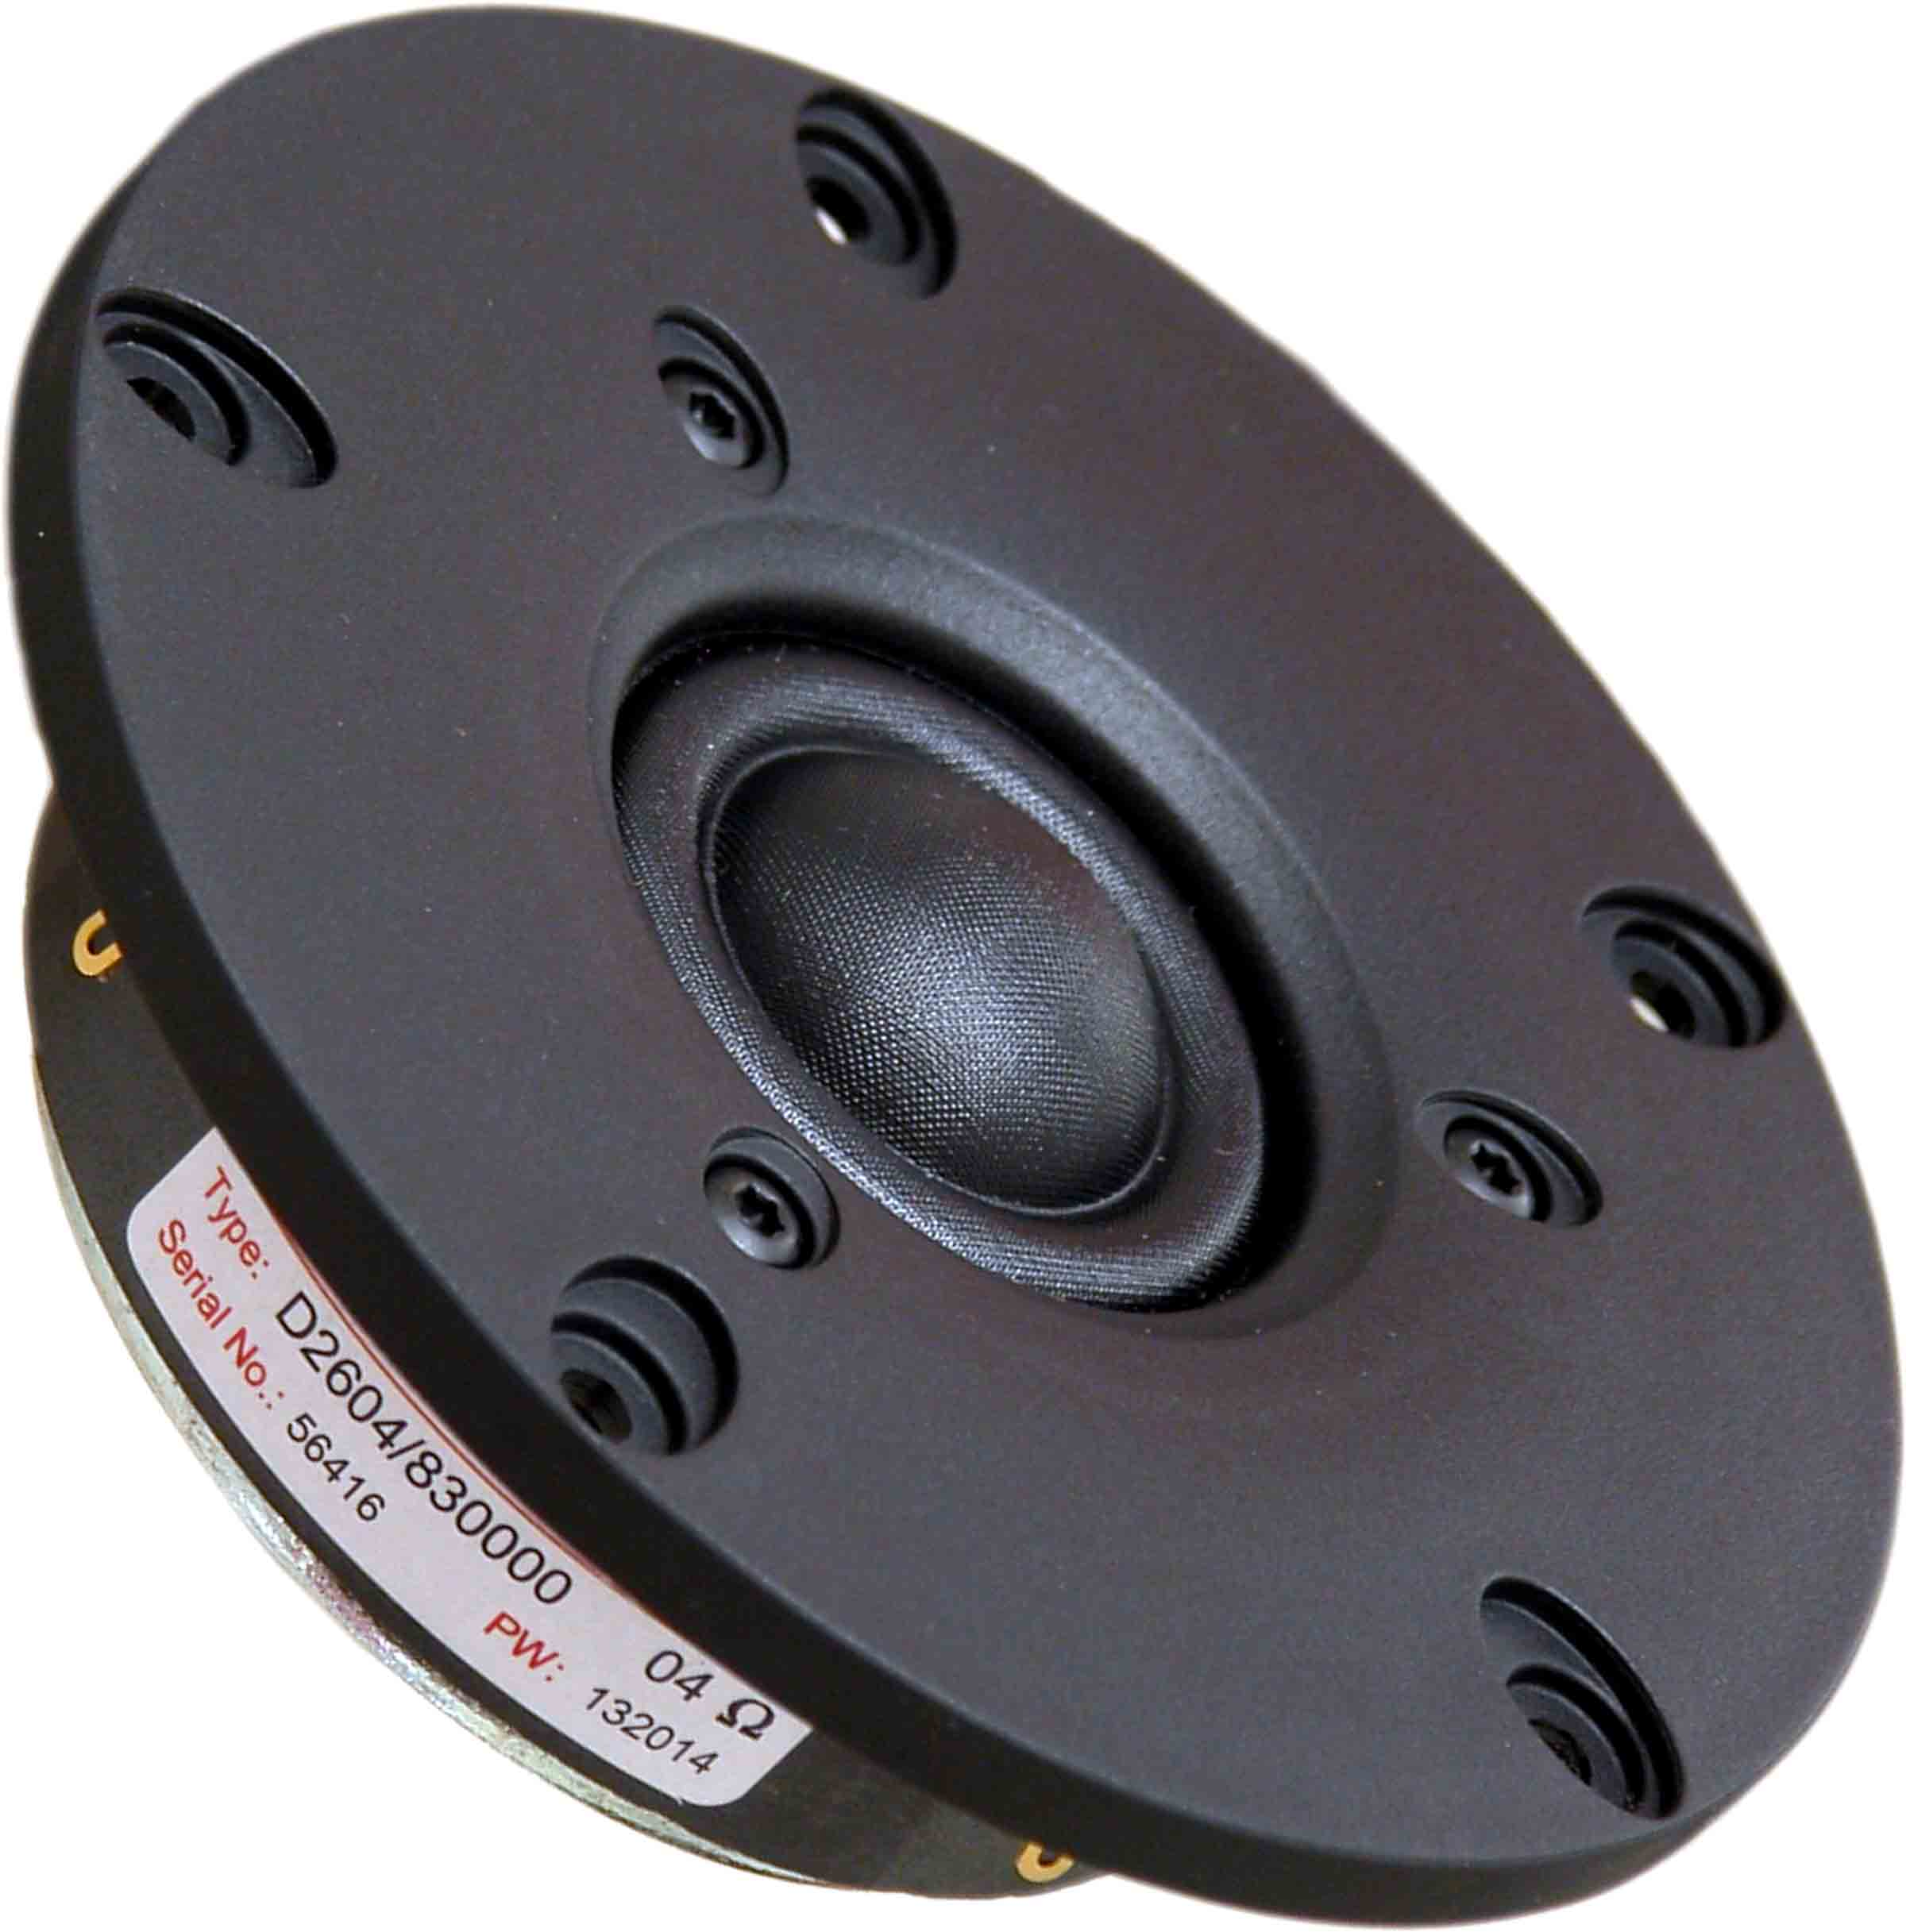 scan-speak-d2604-830000-tweeter-1-4-ohm-200-wmax